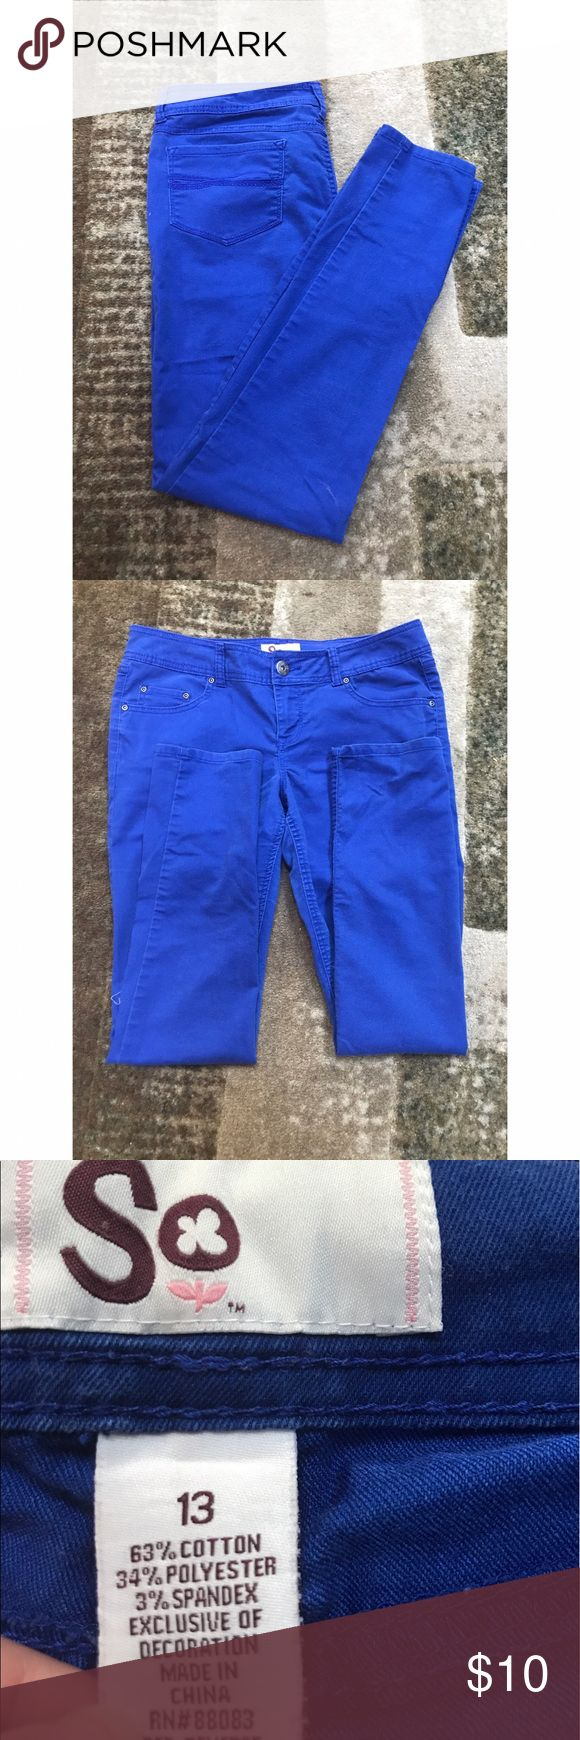 Blue skinny pants These vibrant blue pants are a must have! Skinny jeans with a nice fit for a perfect look Pants Skinny